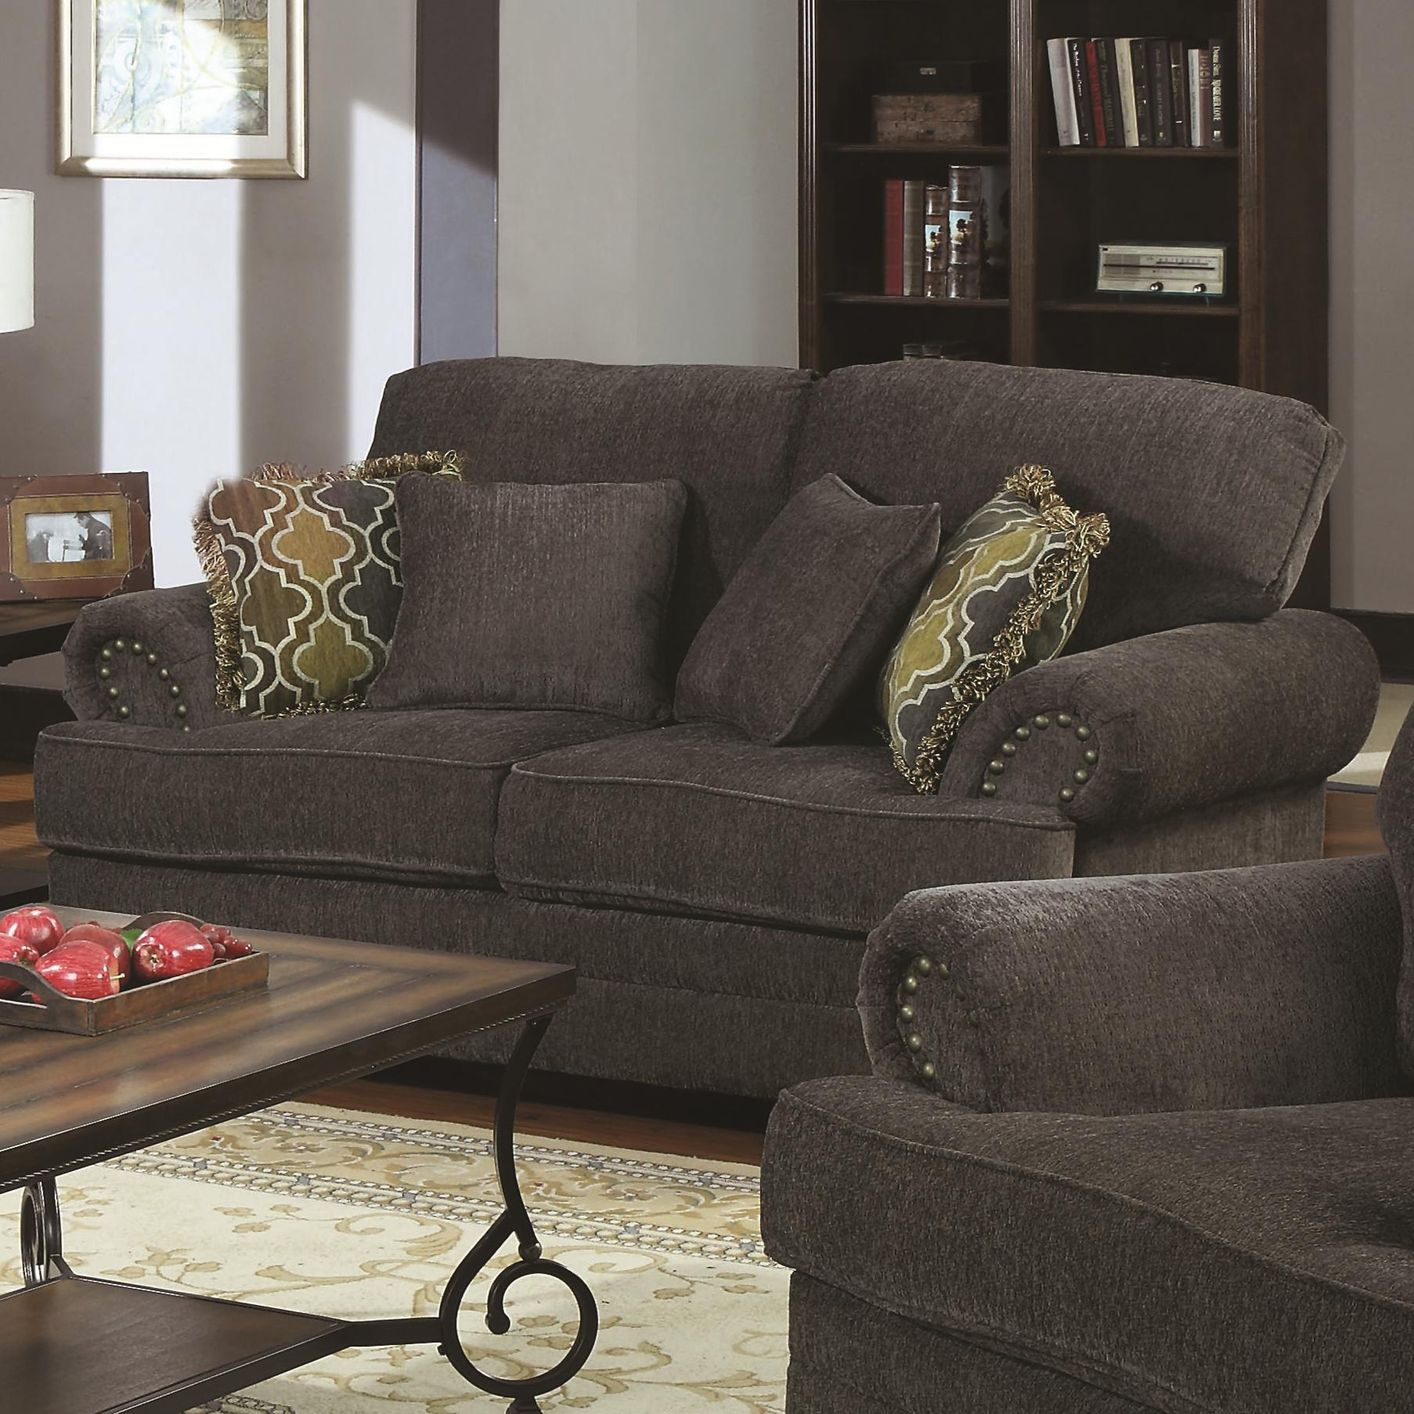 Colton Grey Fabric Loveseat Steal A Sofa Furniture Outlet Los